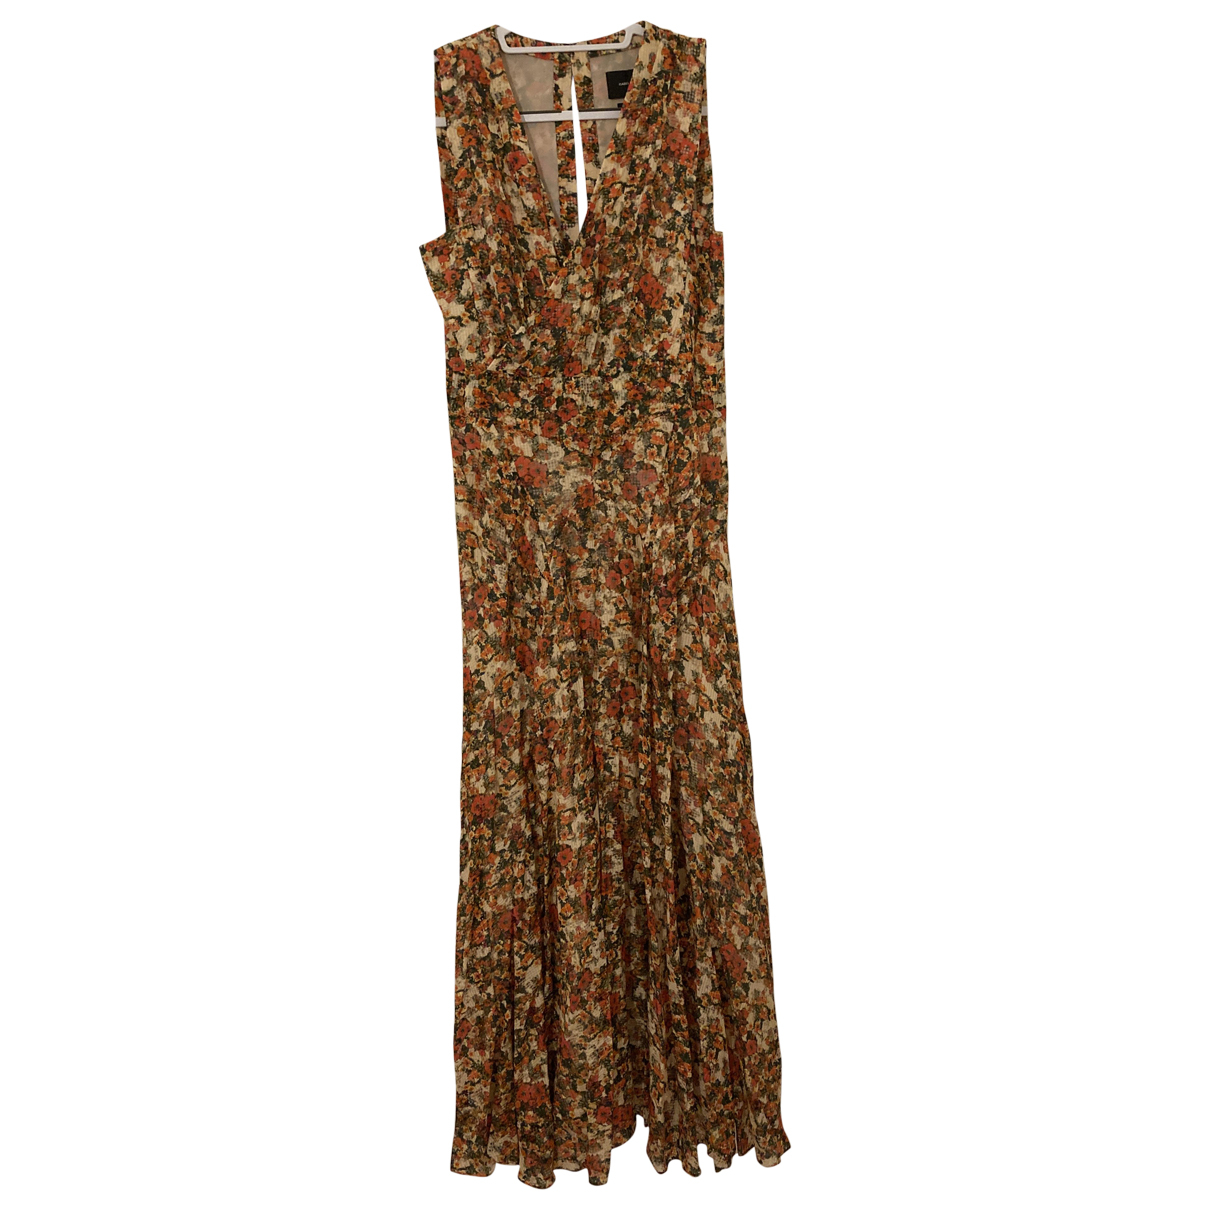 Isabel Marant N Multicolour Silk dress for Women 40 FR